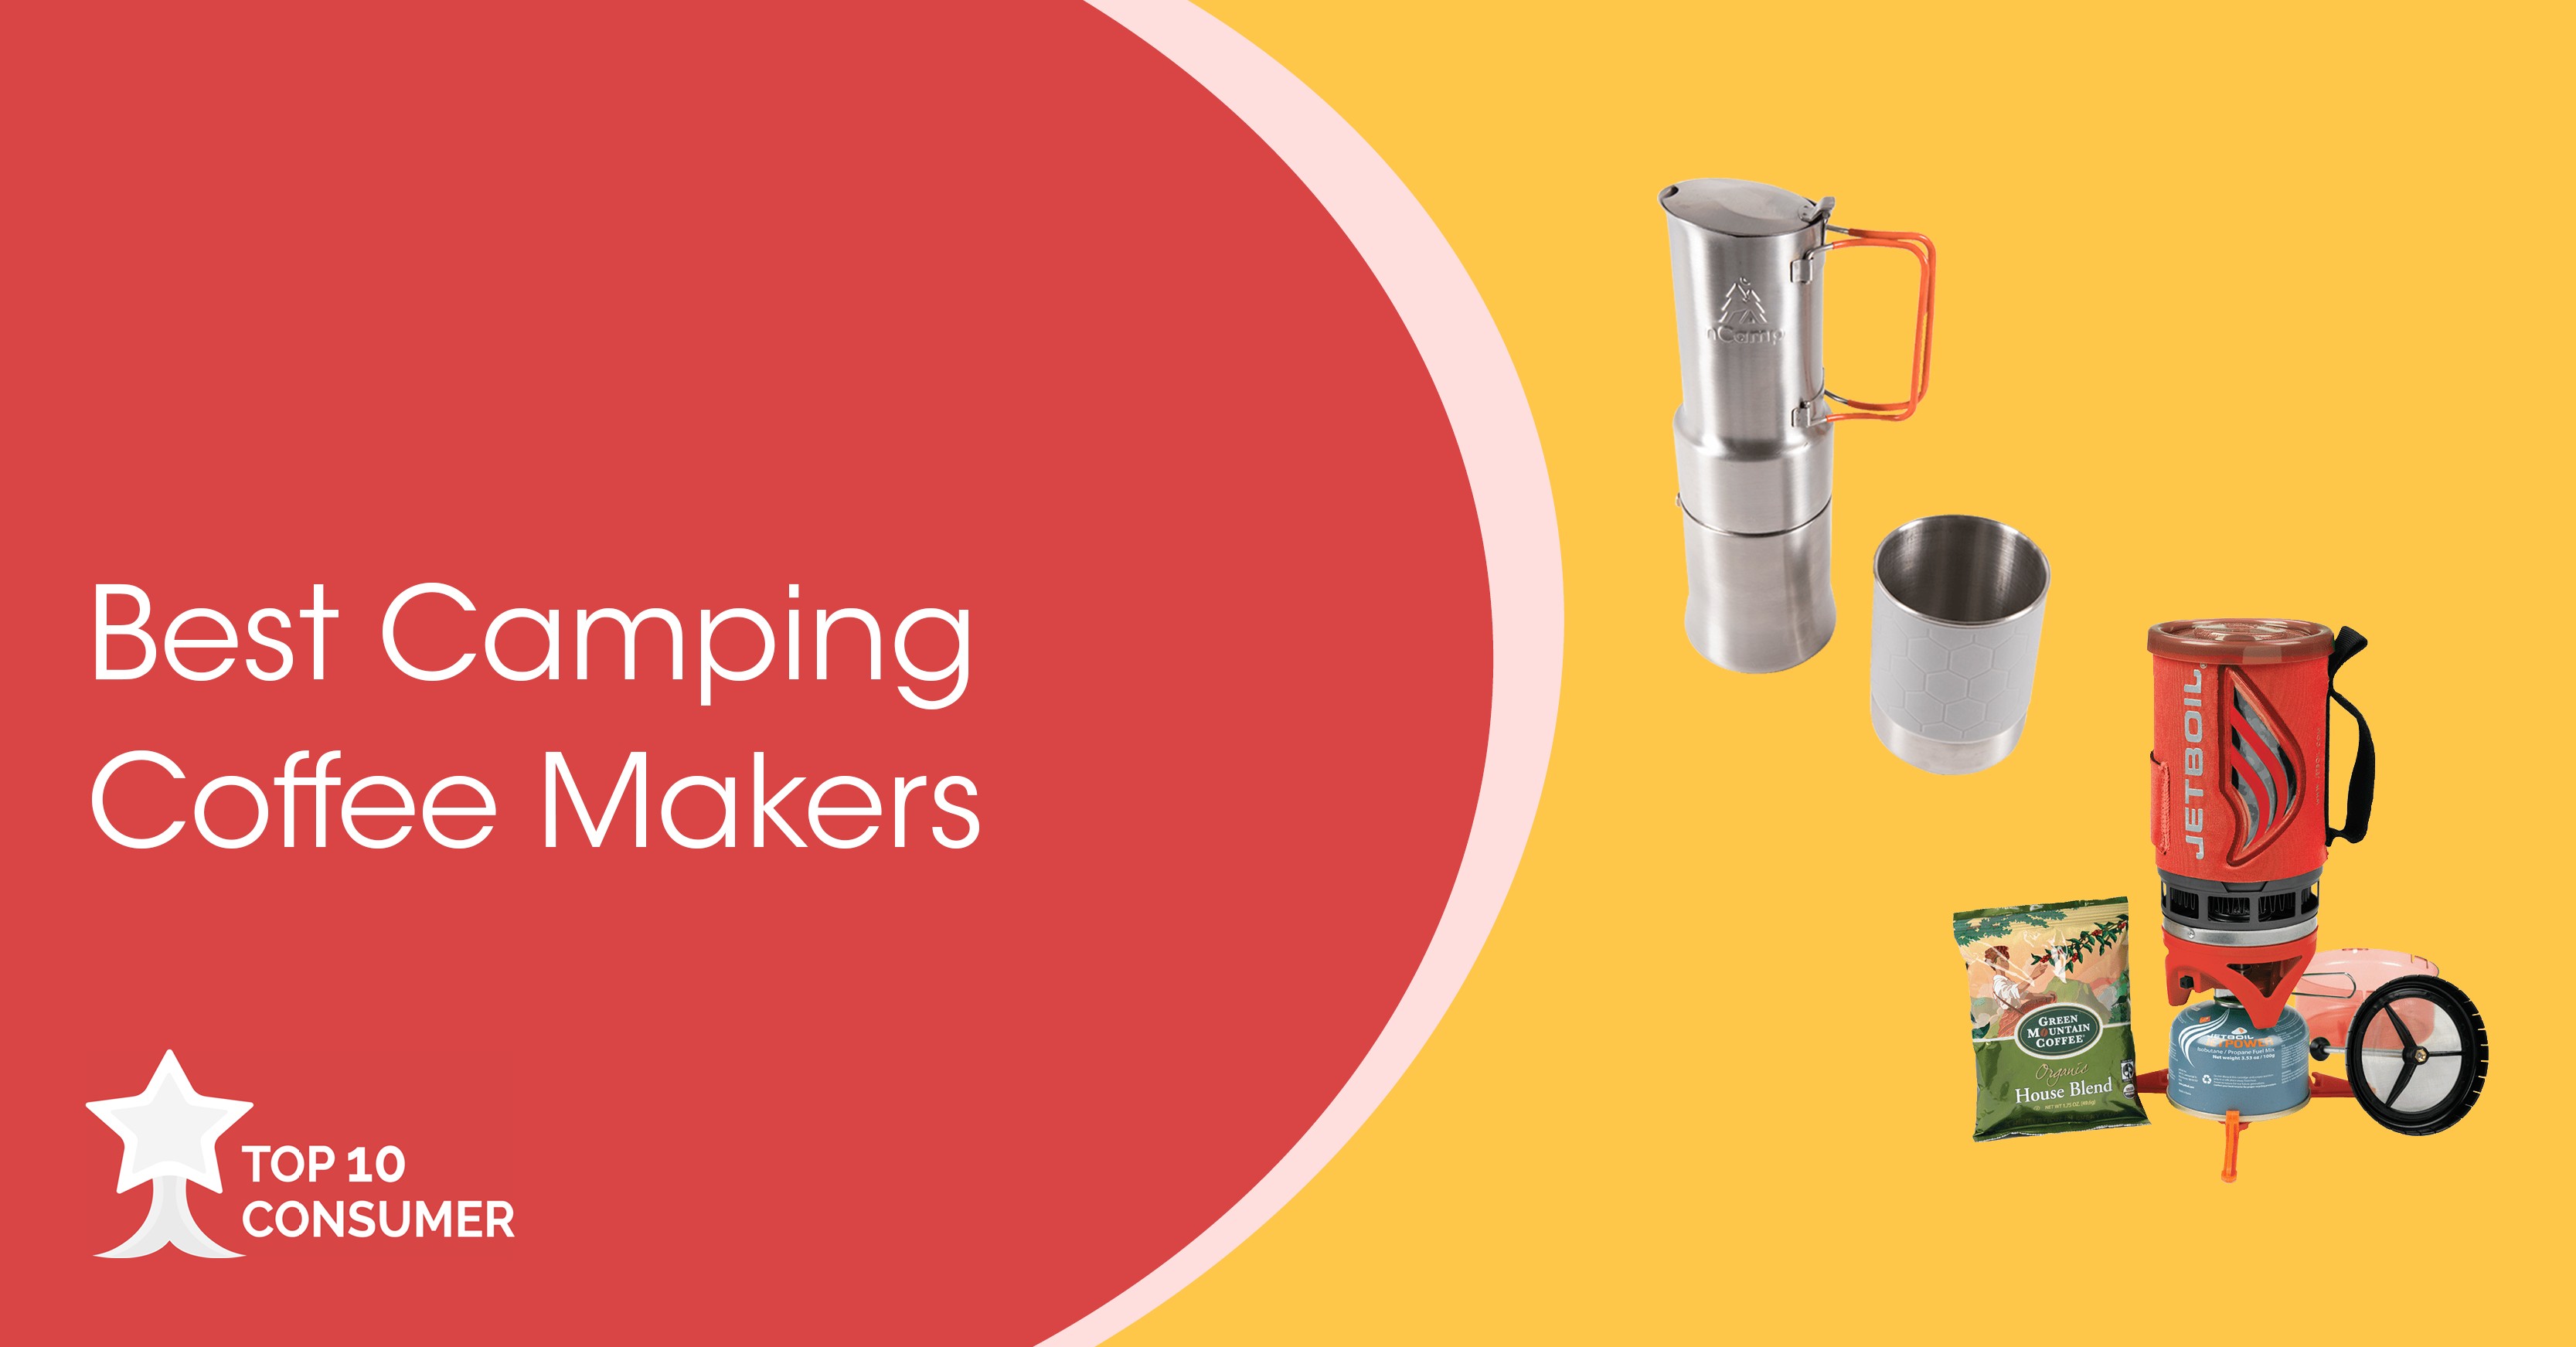 12 Best Camping Coffee Makers